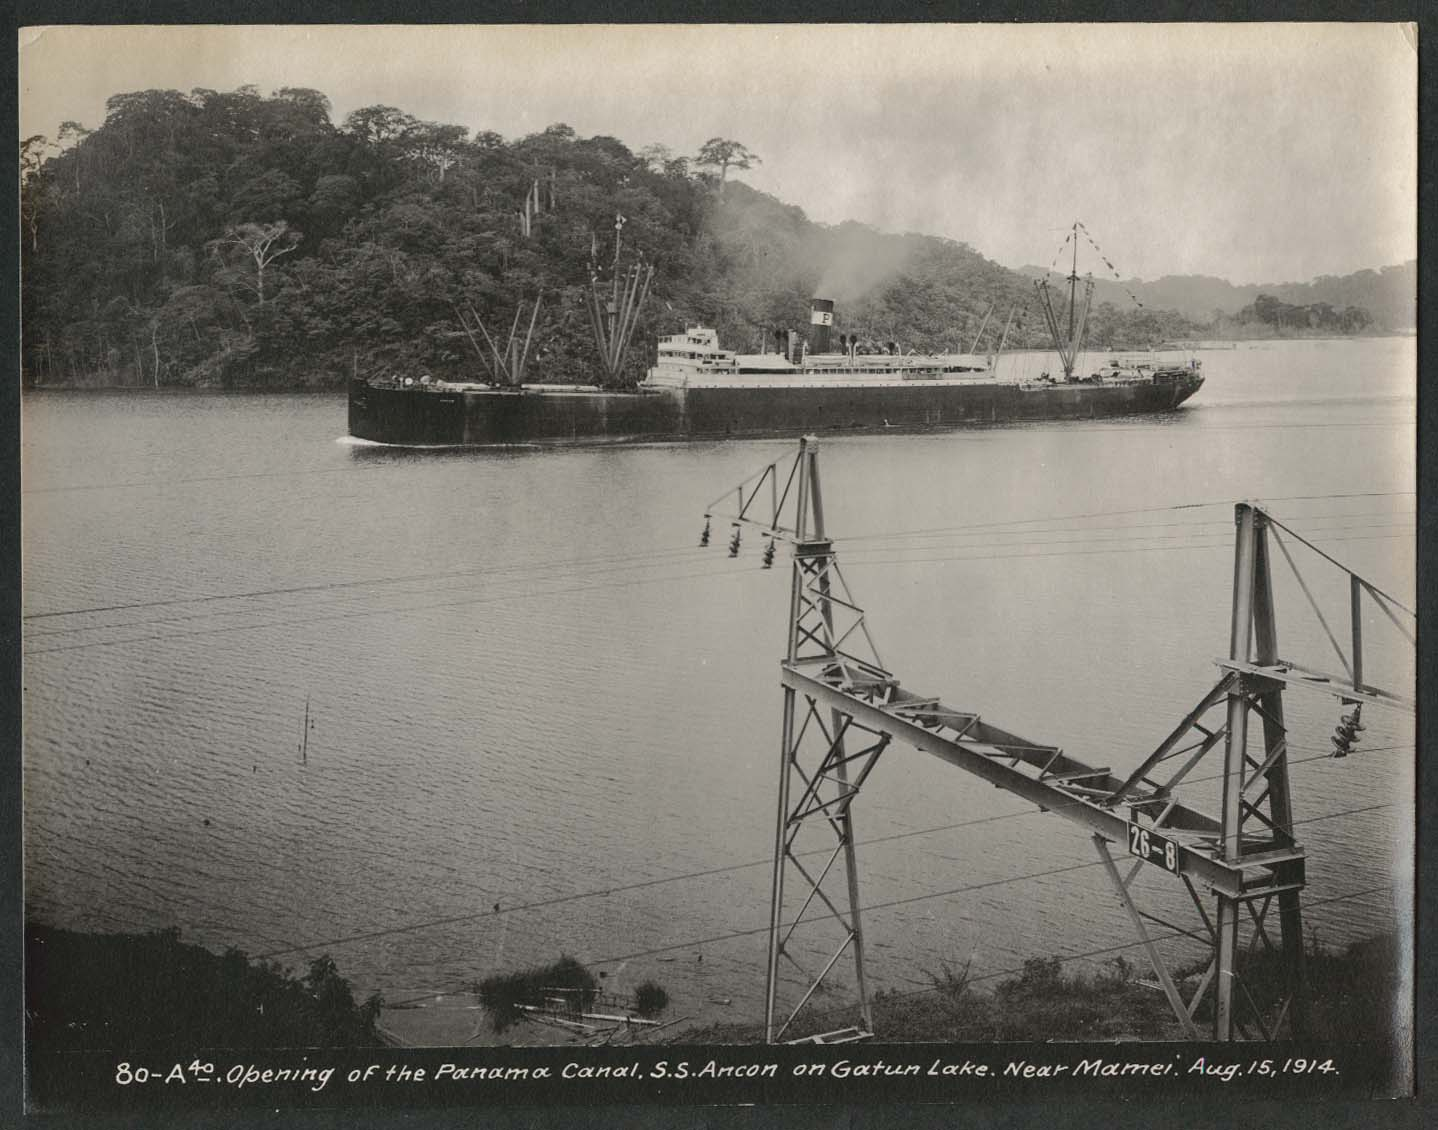 Image for Panama Canal photo 1914 Opening of canal S S Ancon on Gatun Lake near Mamei